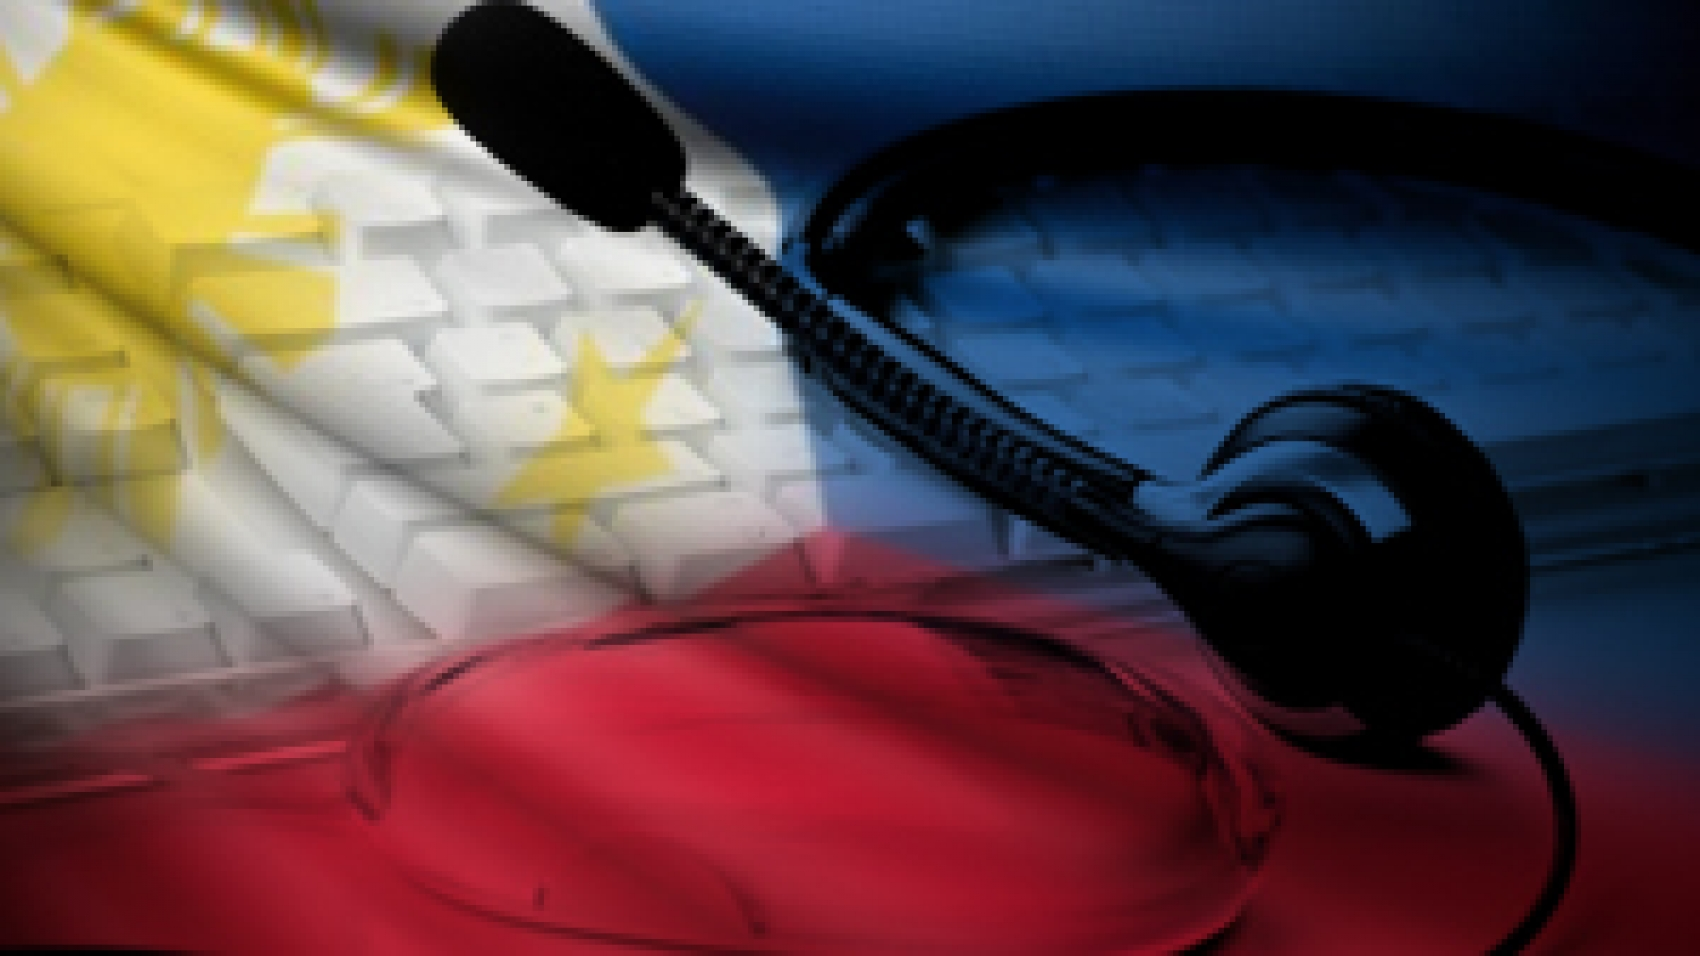 Philippine flag with keyboard and headset